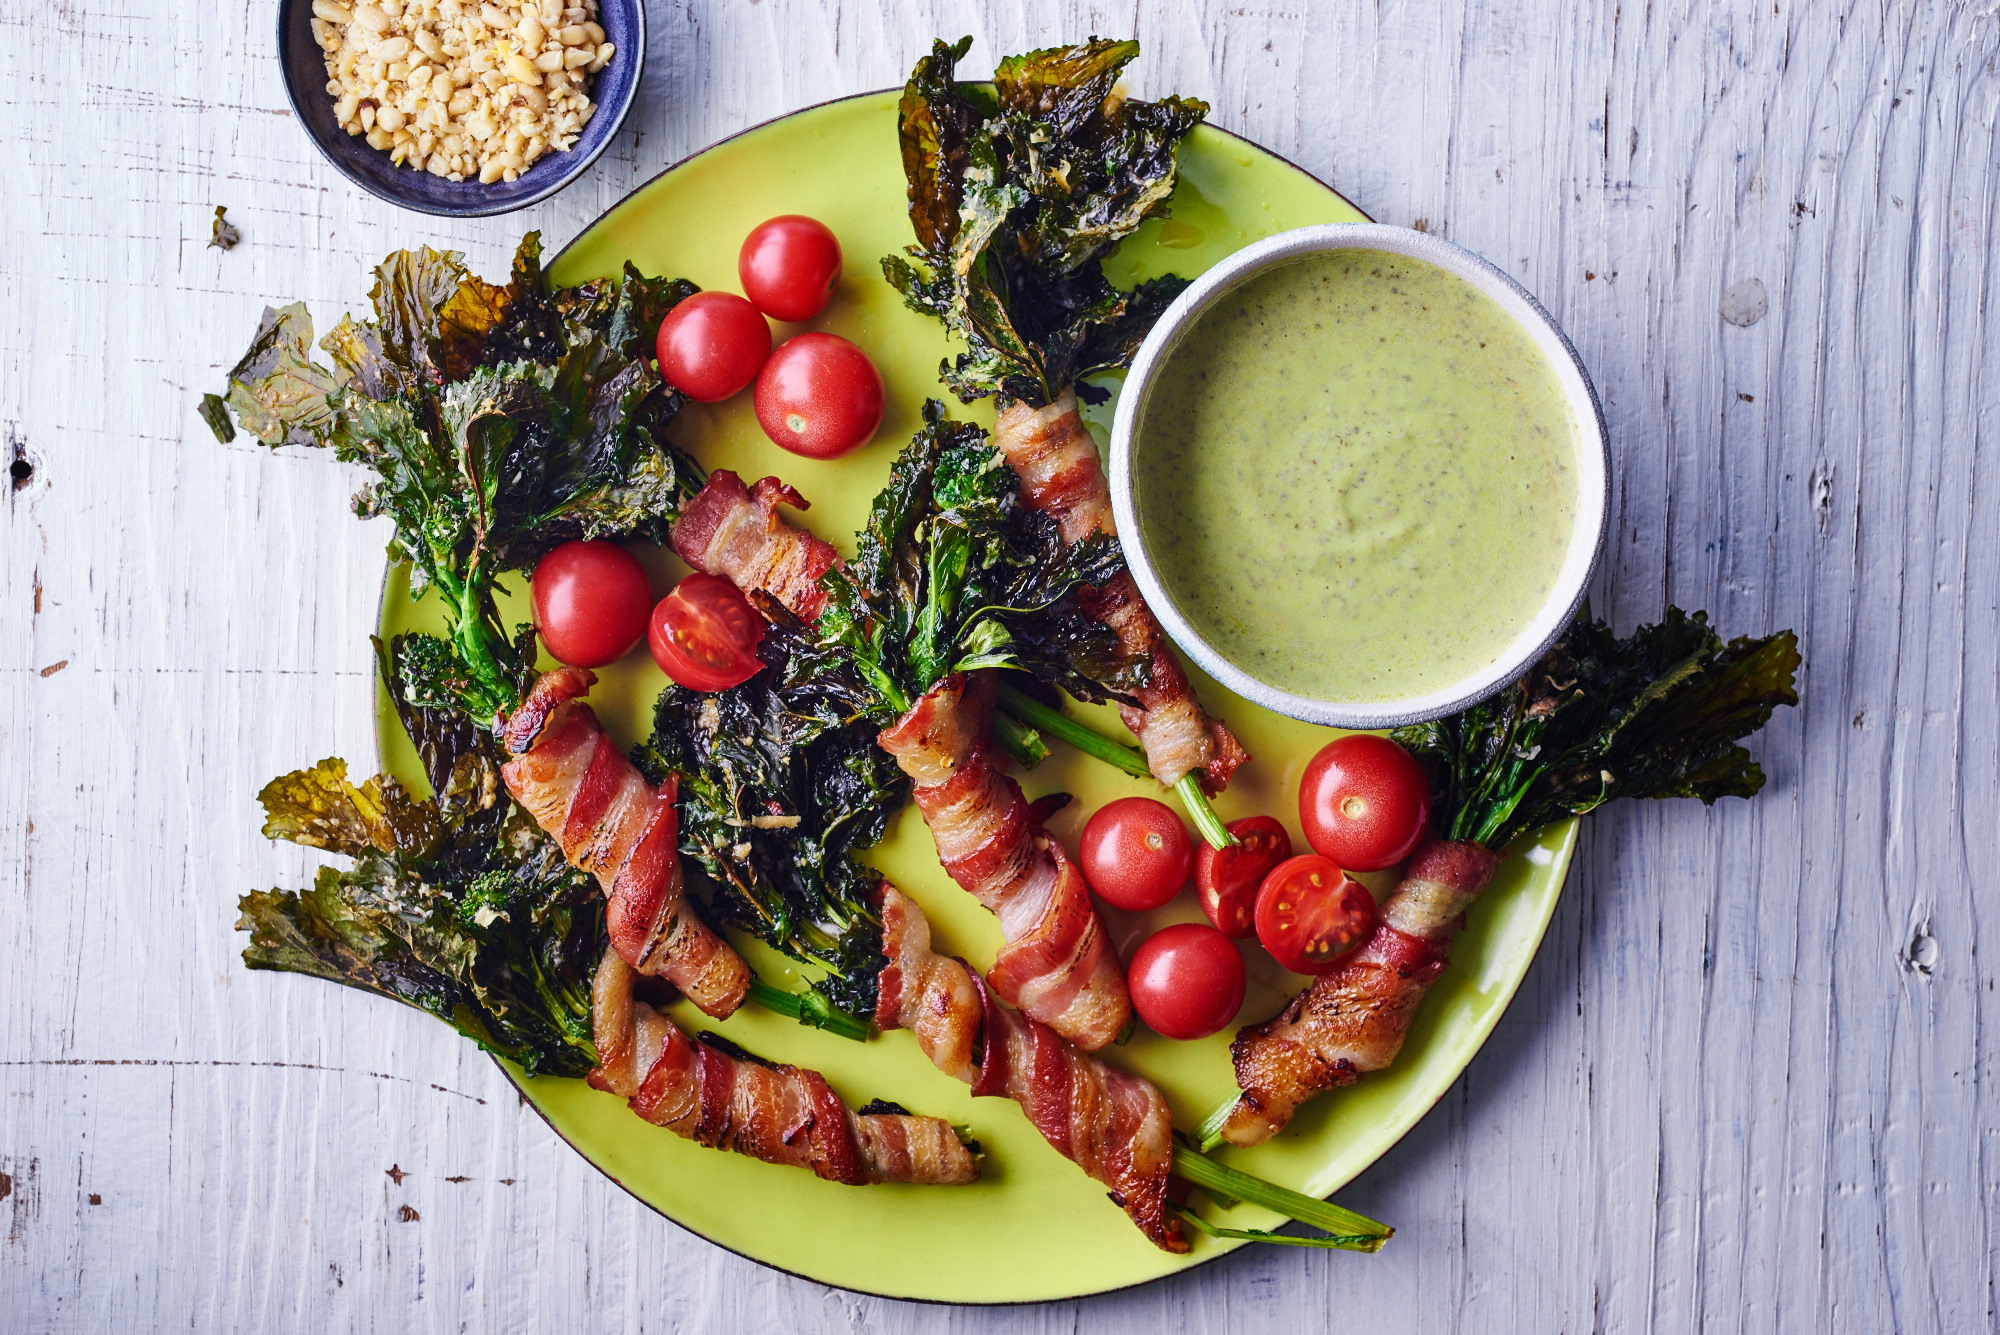 Bacon Wrapped Parmesan Broccoli Rabe